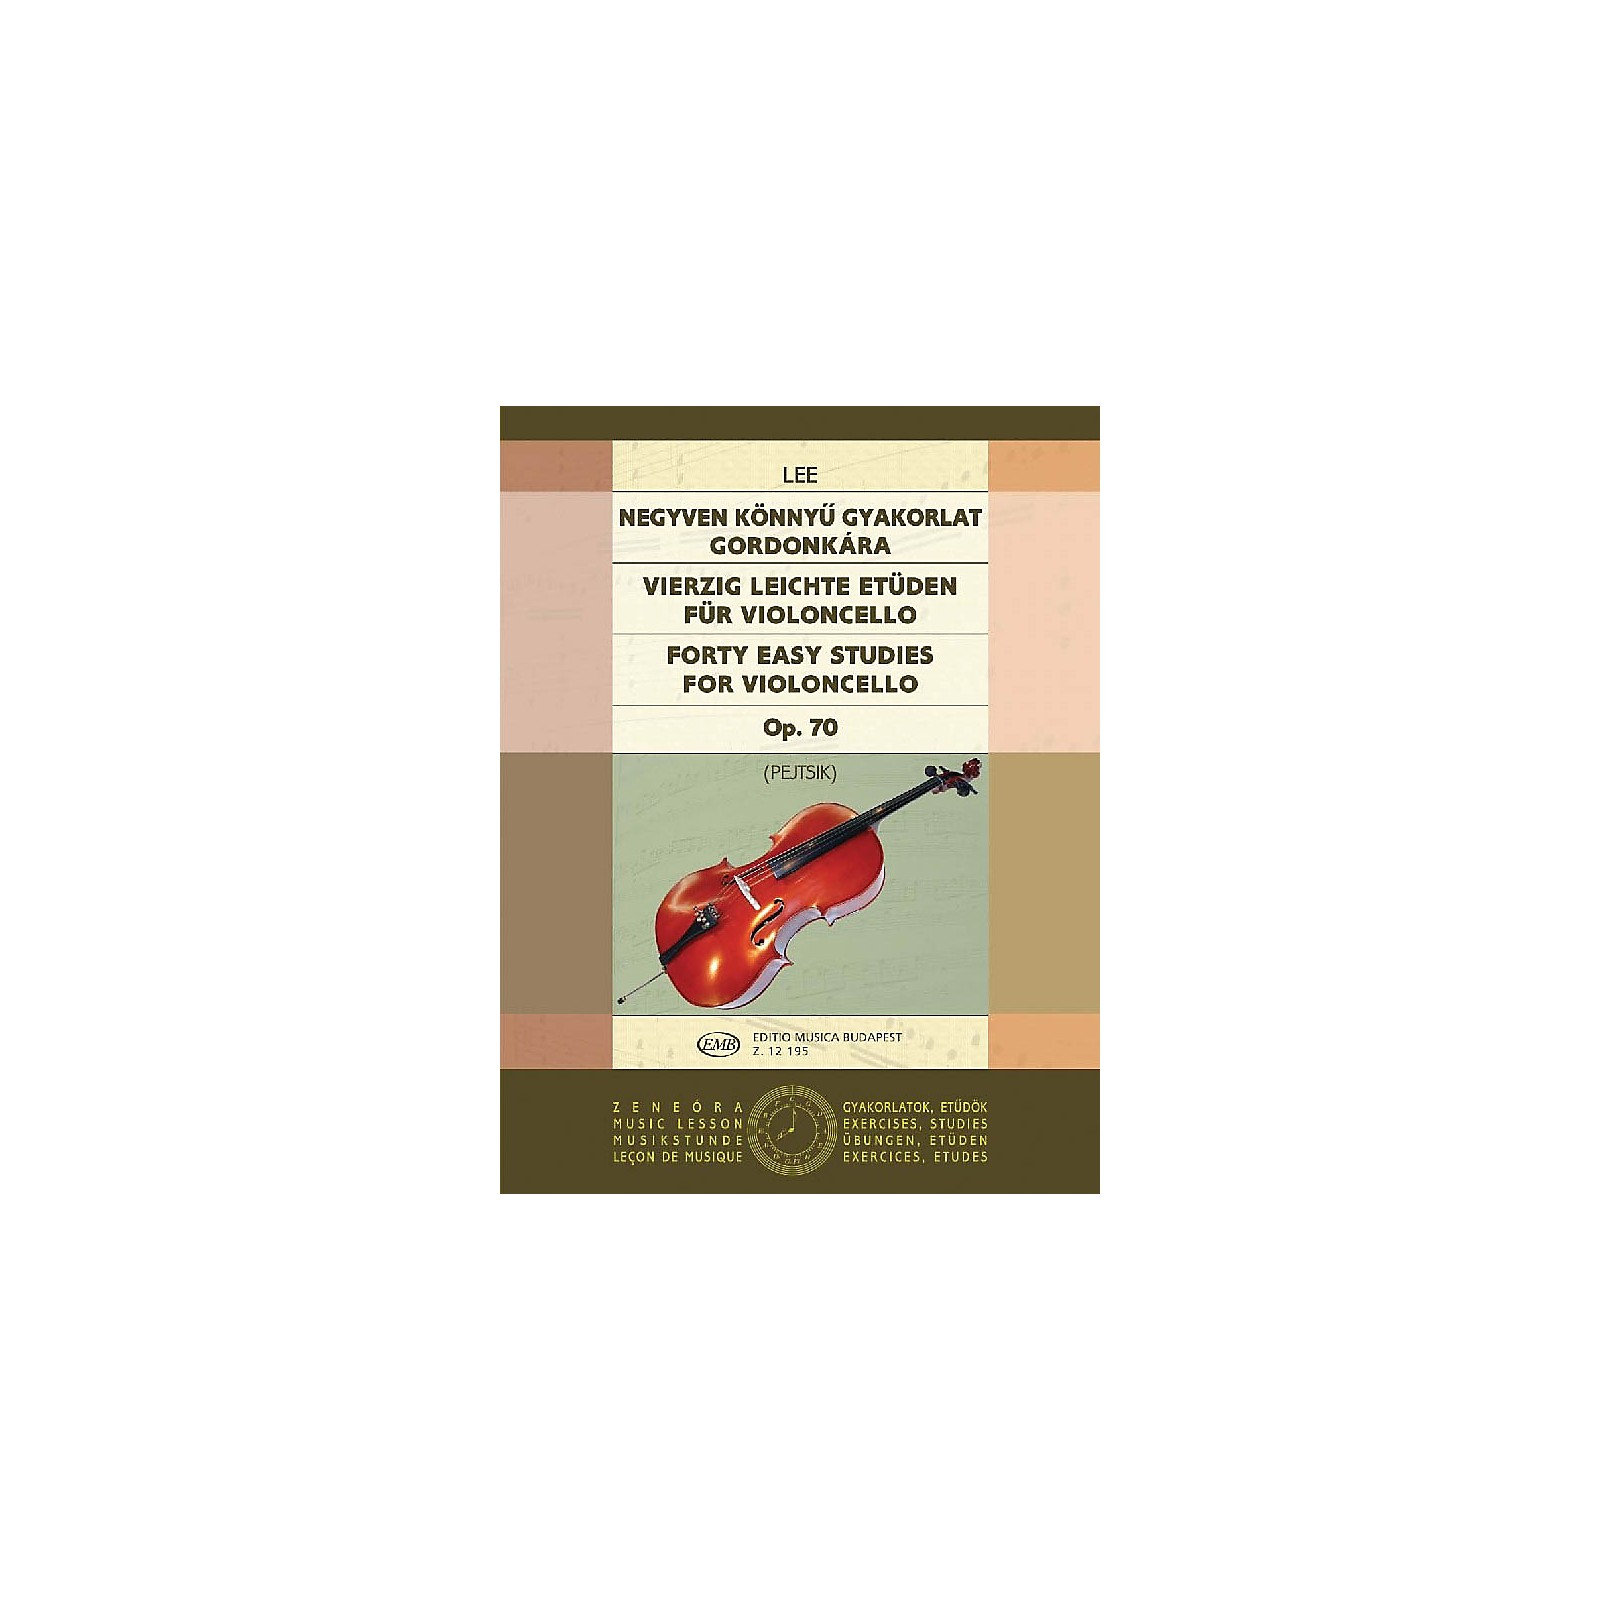 Editio Musica Budapest 40 Easy Studies for Violoncello in the First Position, Op. 70 EMB Series by Sebastian Lee